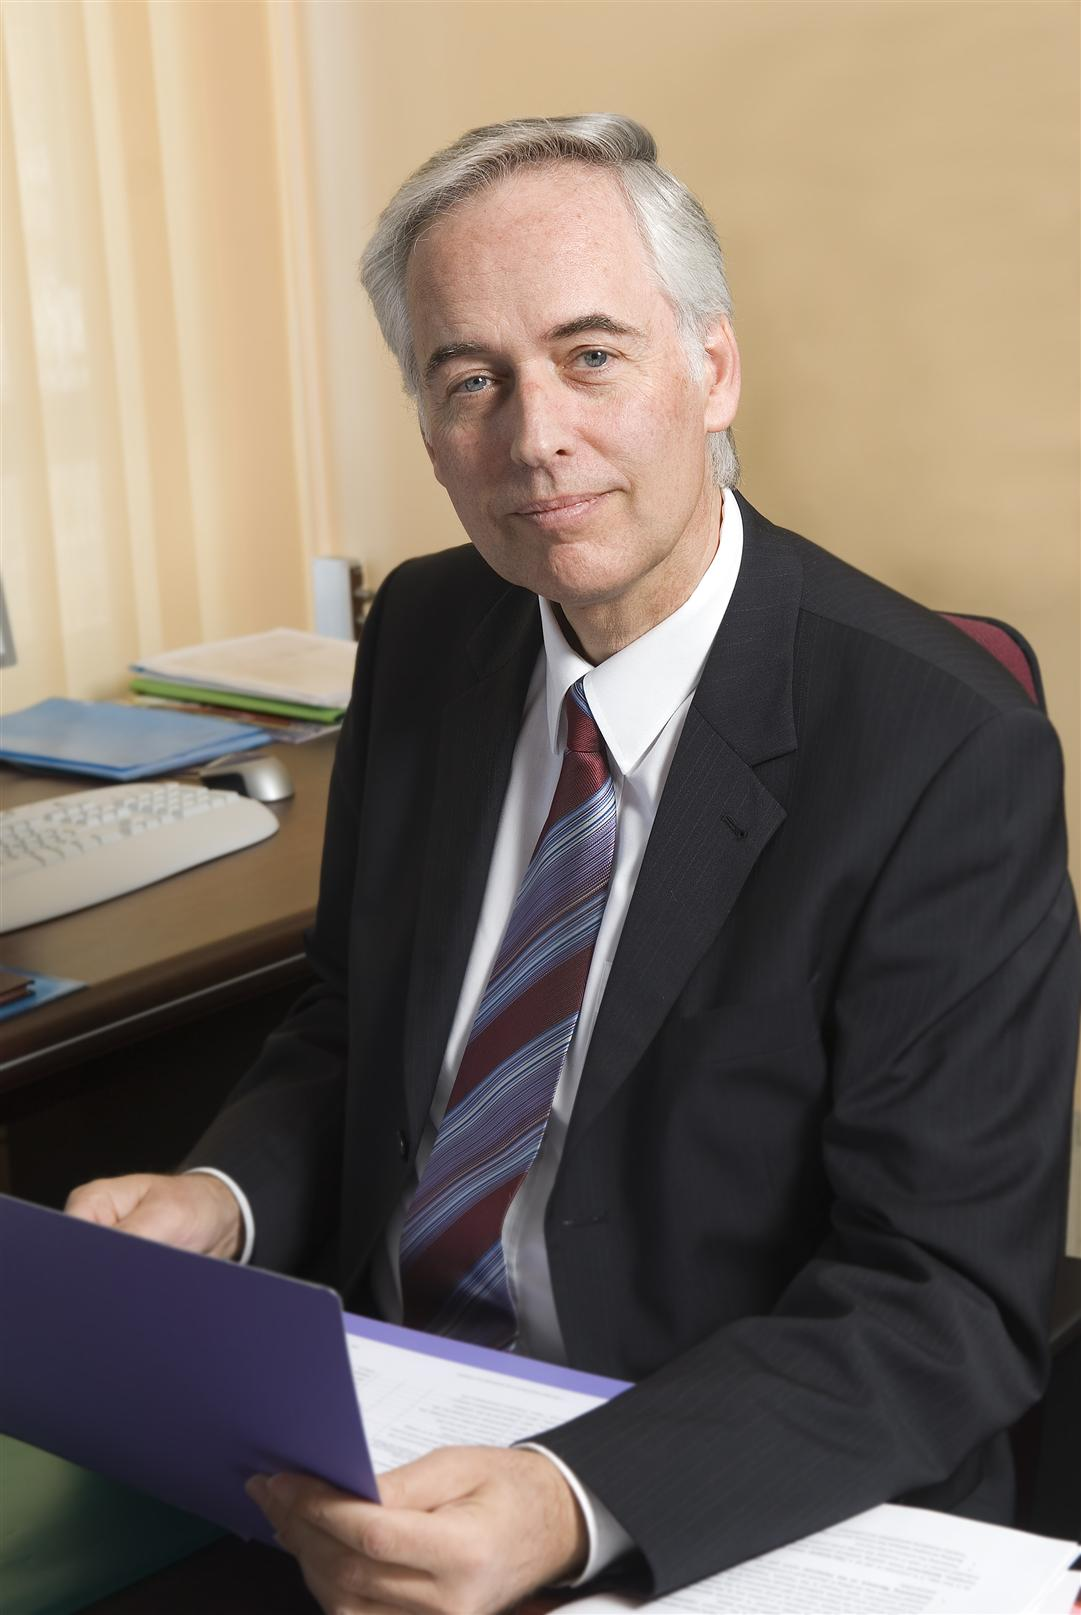 Sigurd Lettow, Chief Financial Officer of CERN